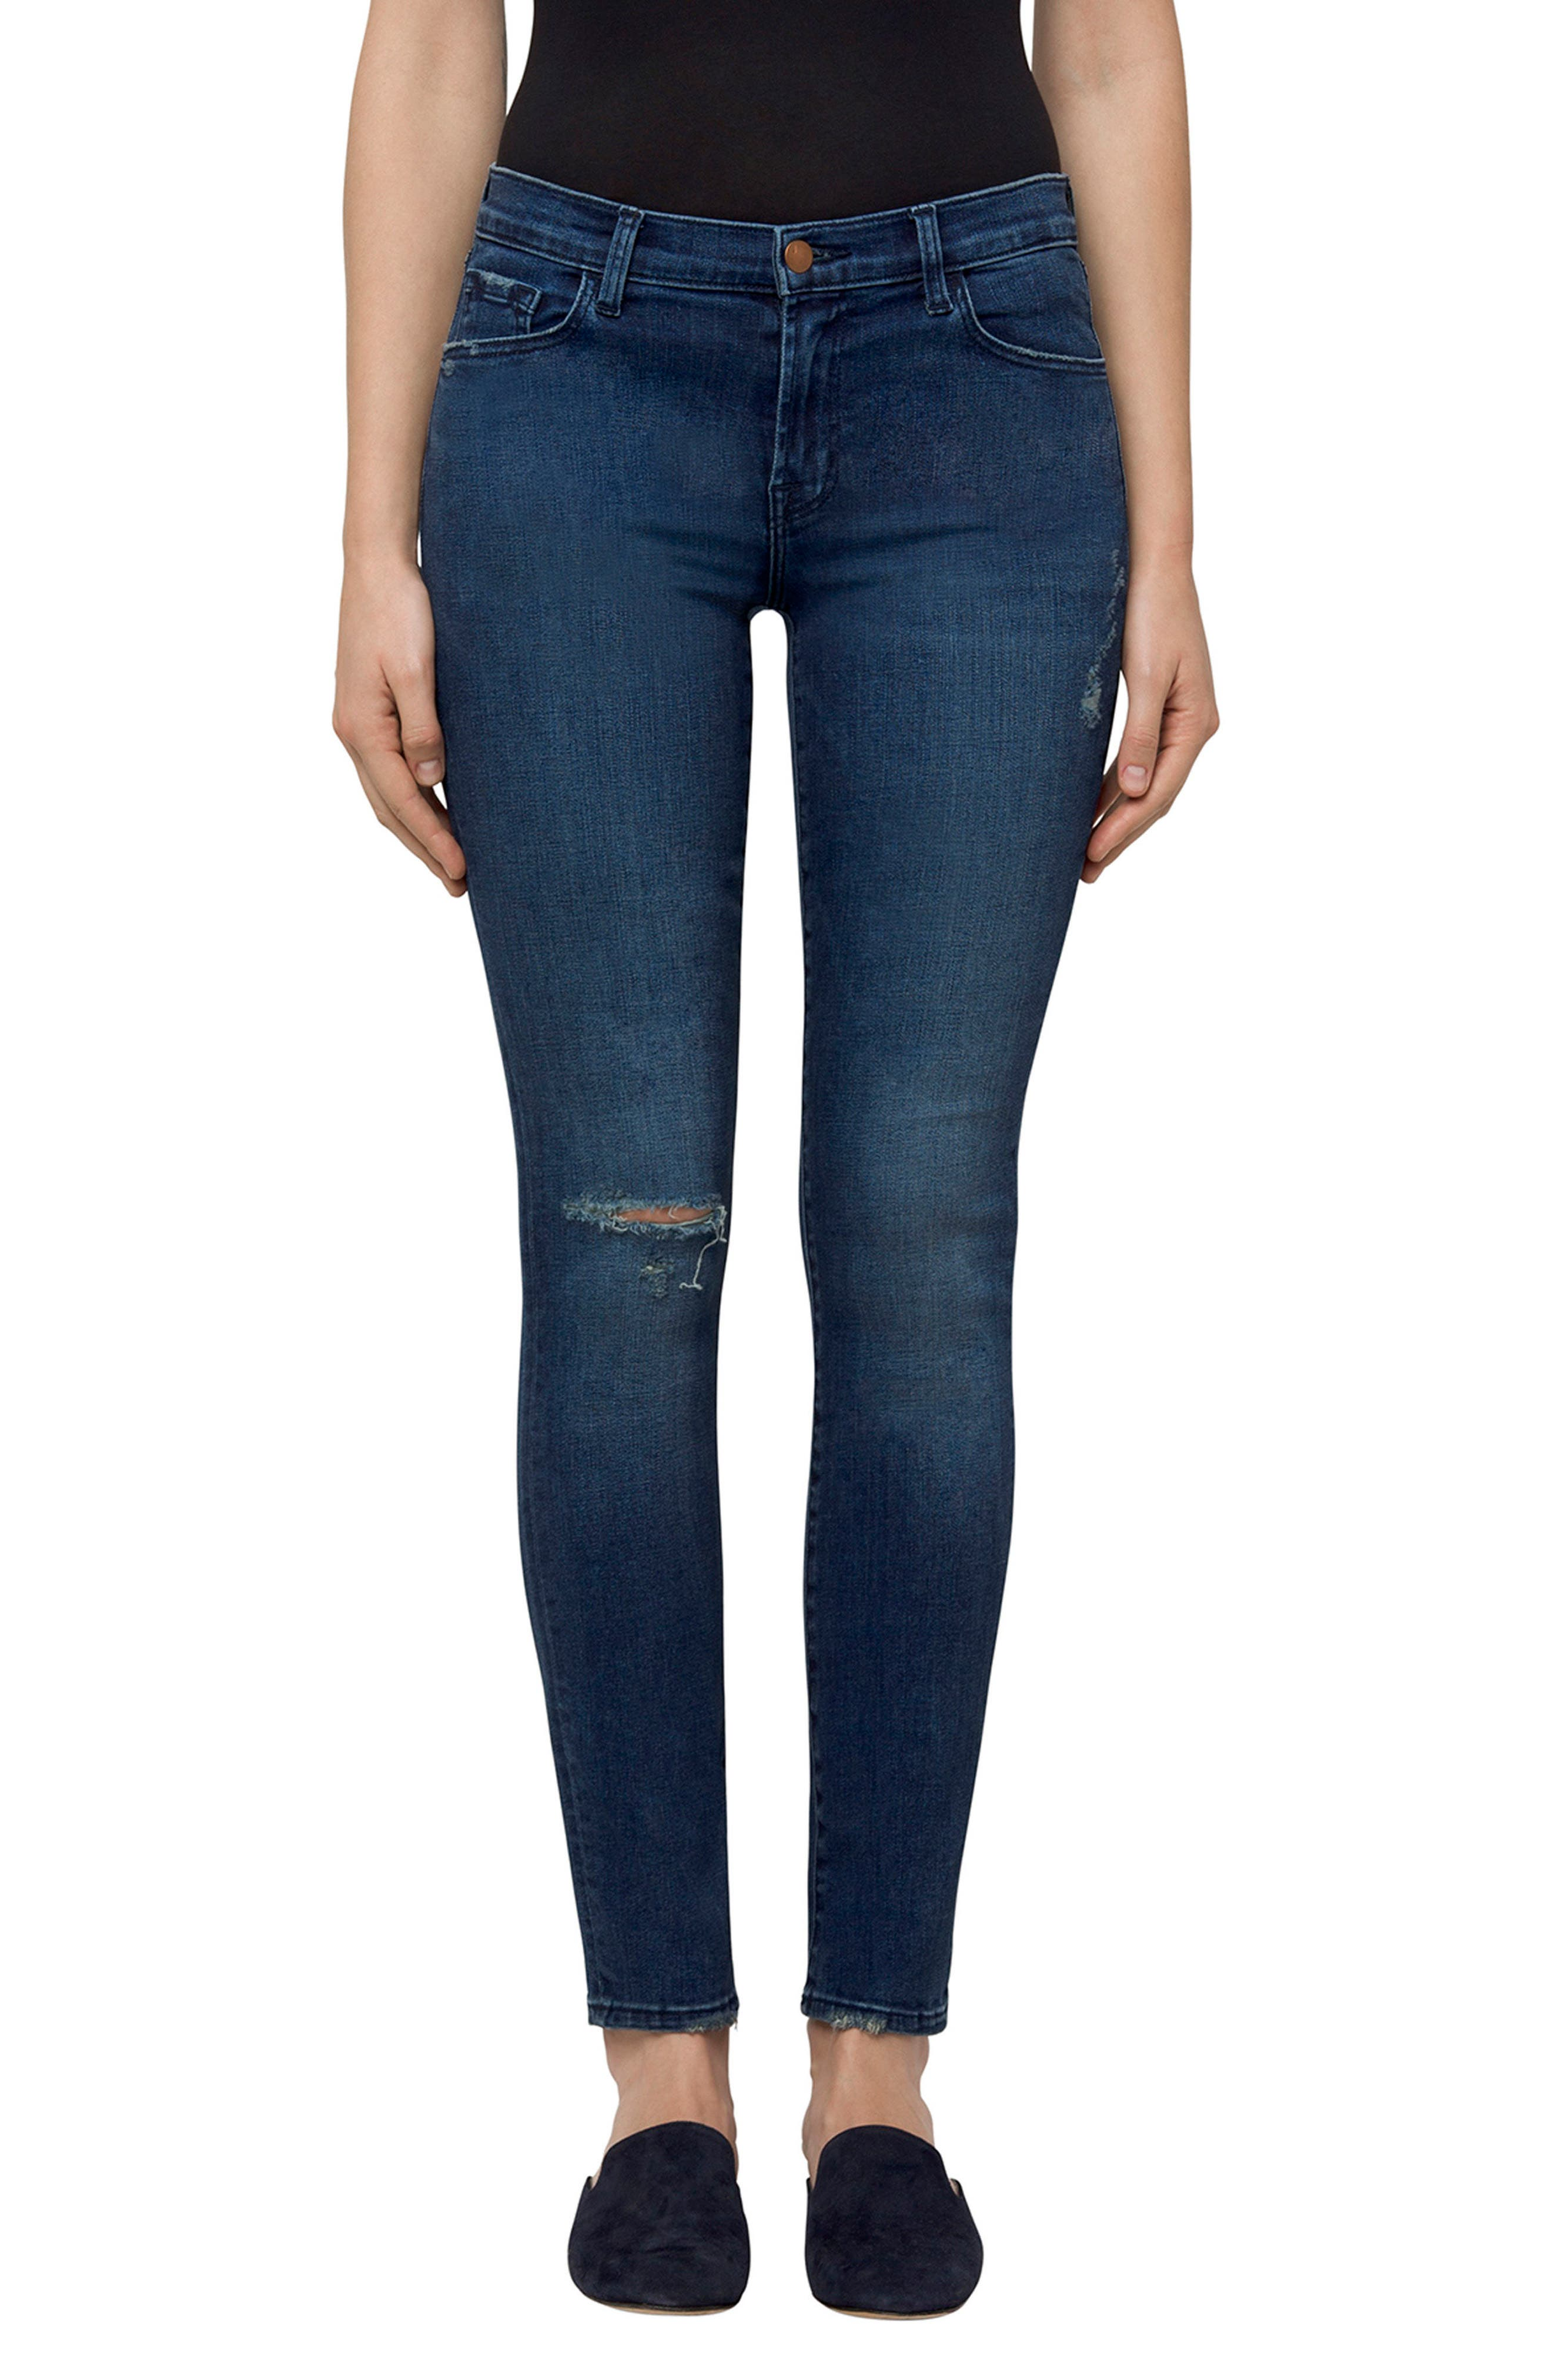 811 Skinny Jeans,                             Main thumbnail 1, color,                             Swift Destruct